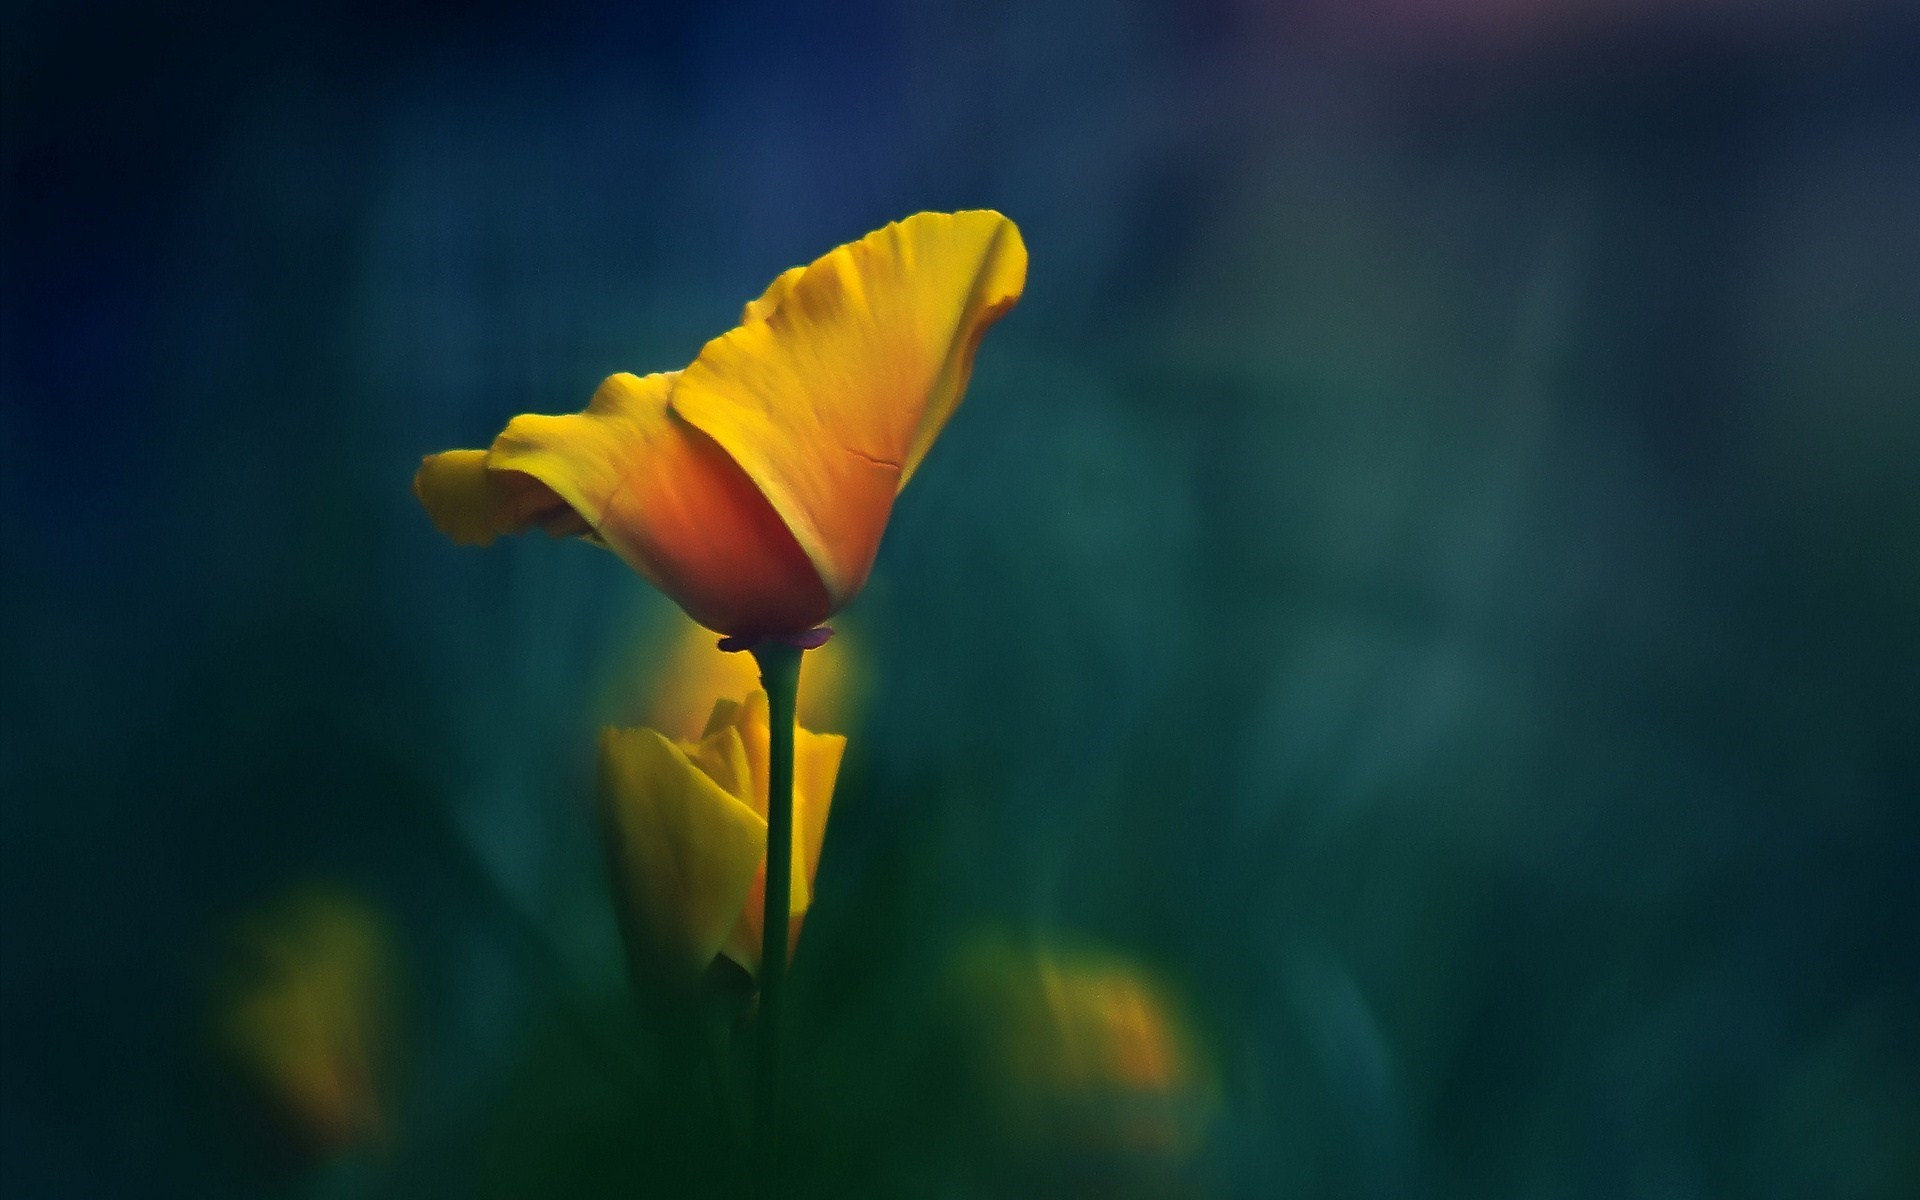 Yellow Flower Background For Download